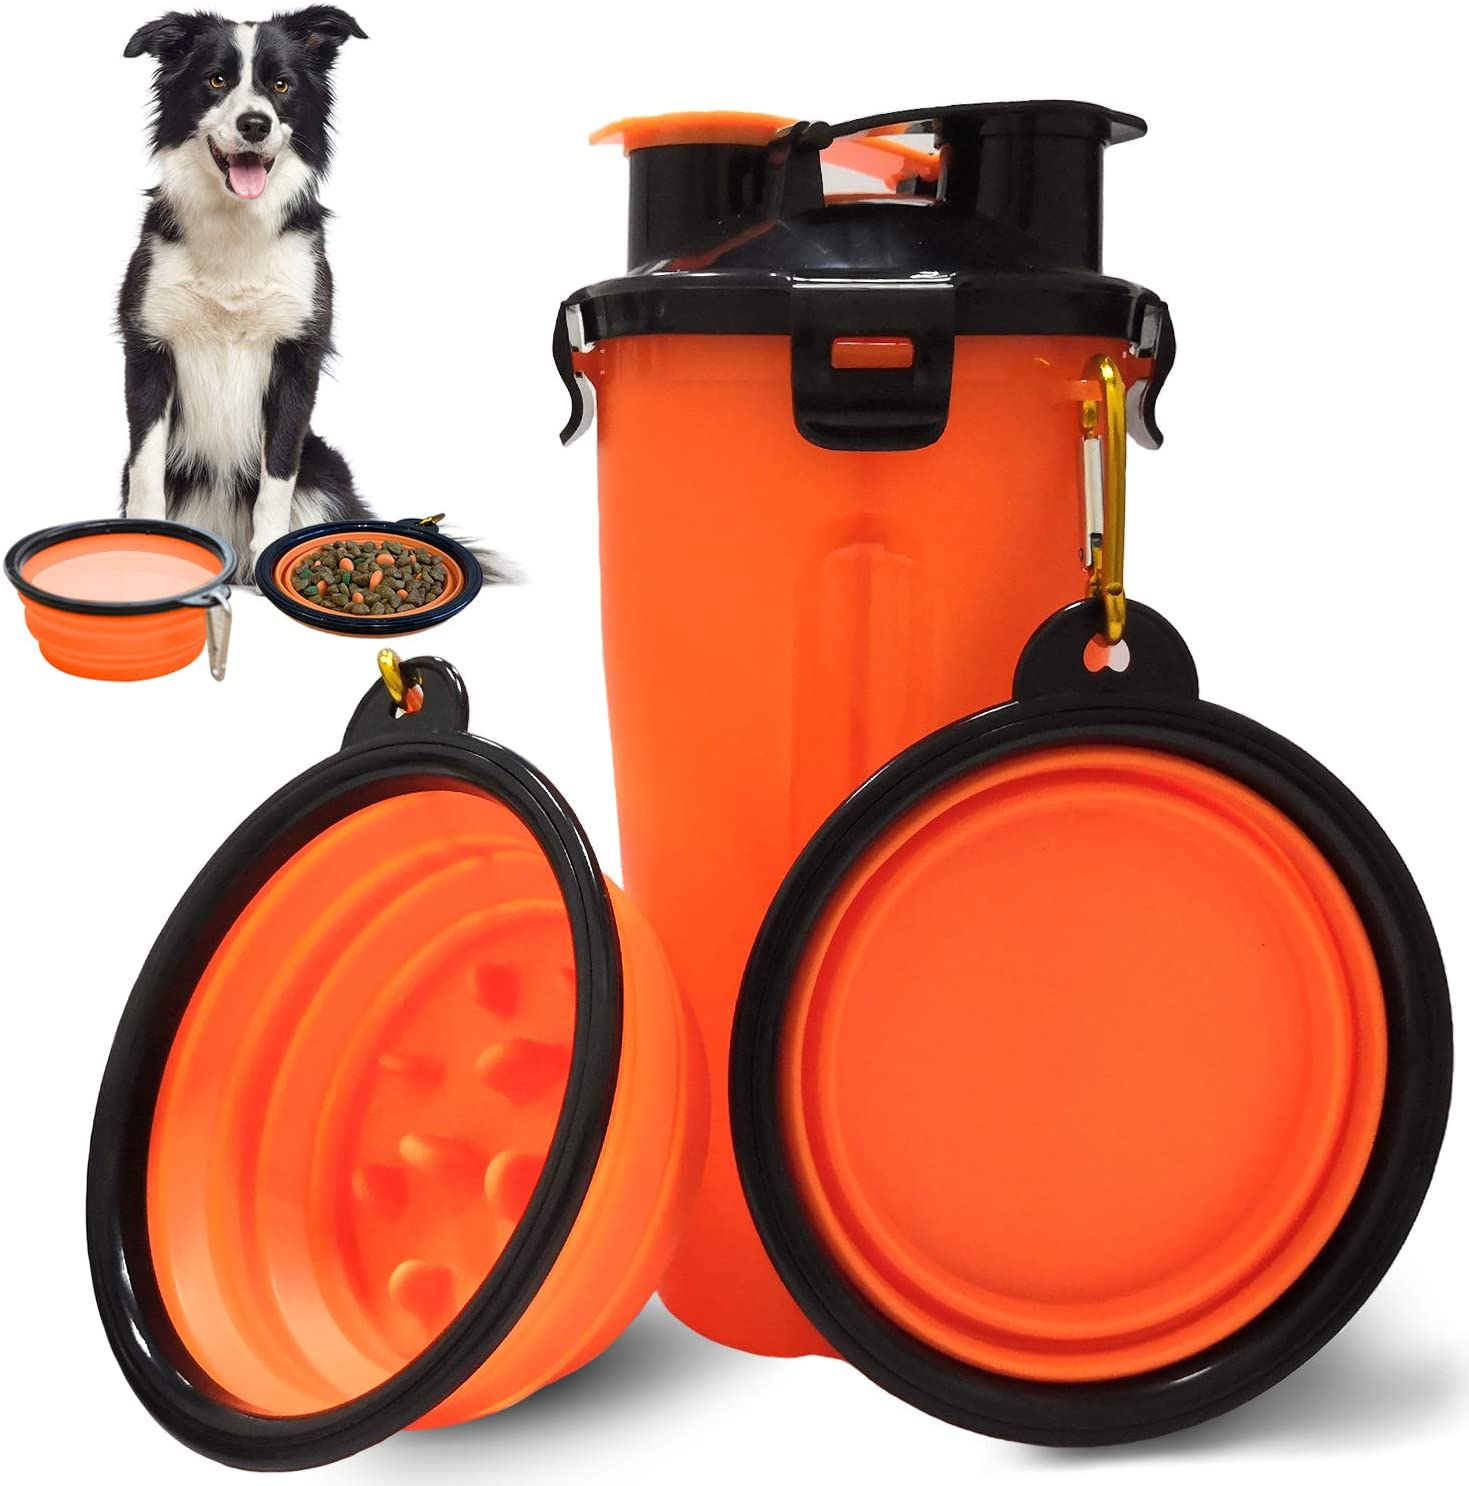 Dog Water Bowls Dog Travel Water Bottle Portable Dog Water Dispenser and Food Container Outdoor Leak-Proof Cup with 2 Collapsible Dog Bowls for Walking HikingTravelling Camping